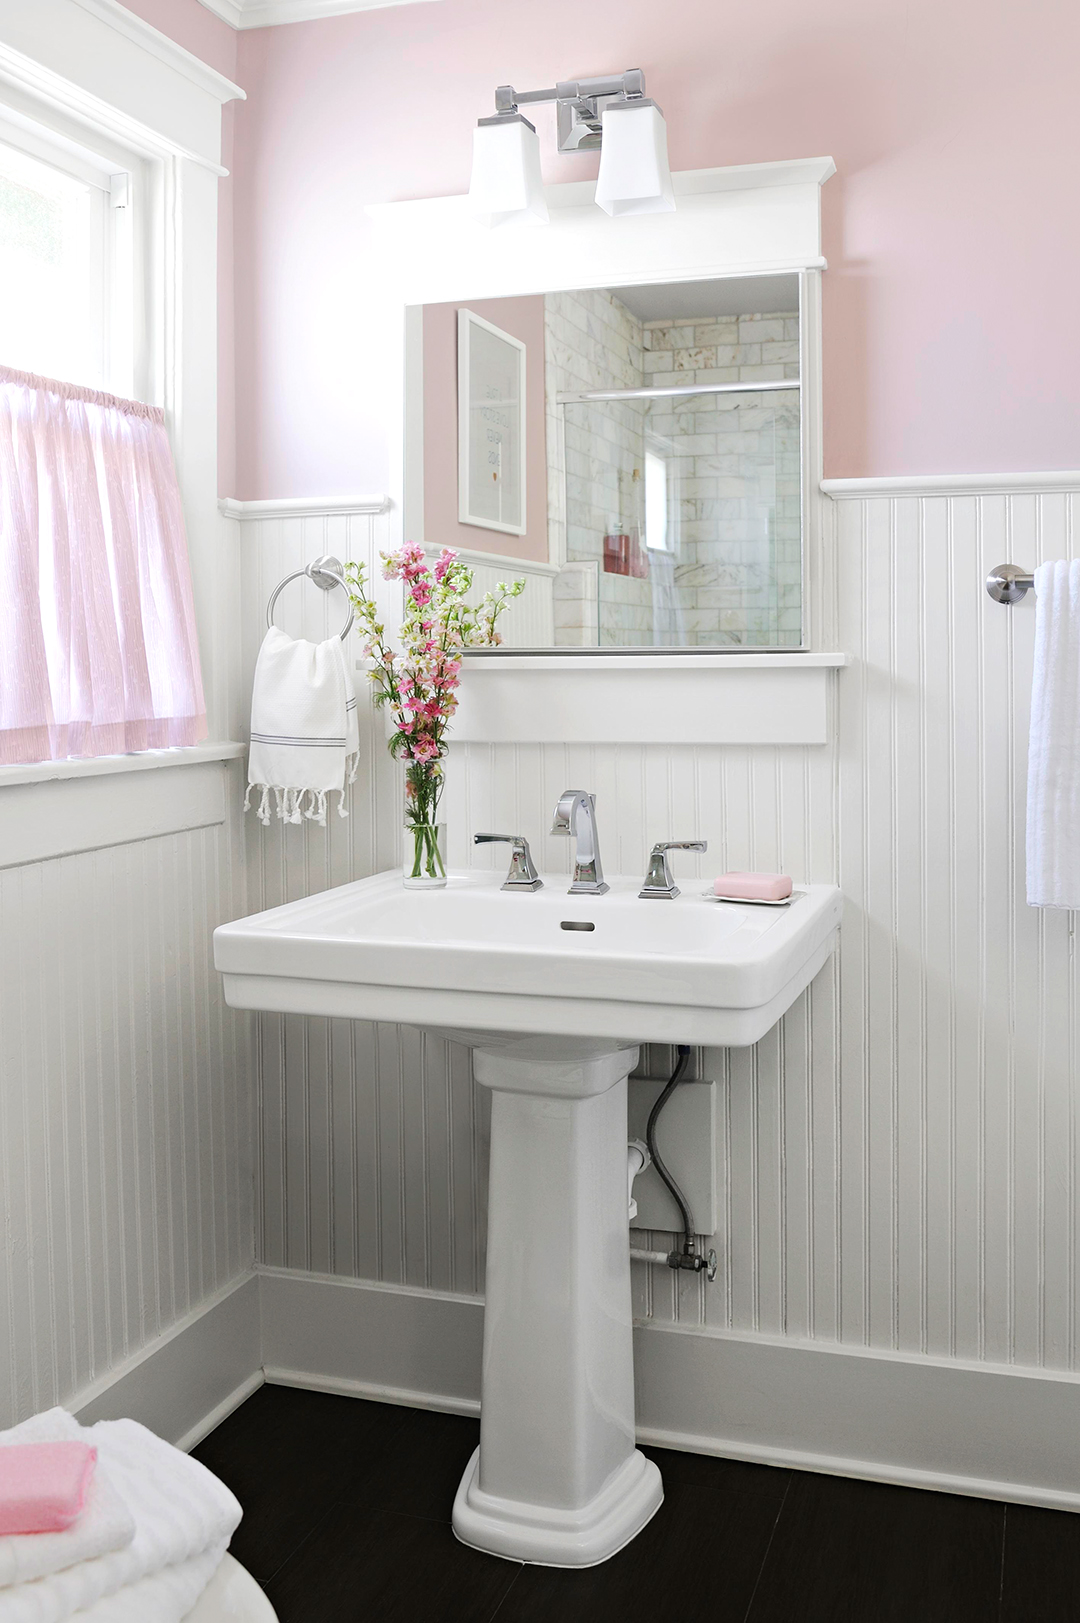 powdery pink bathroom and white lower walls and sink